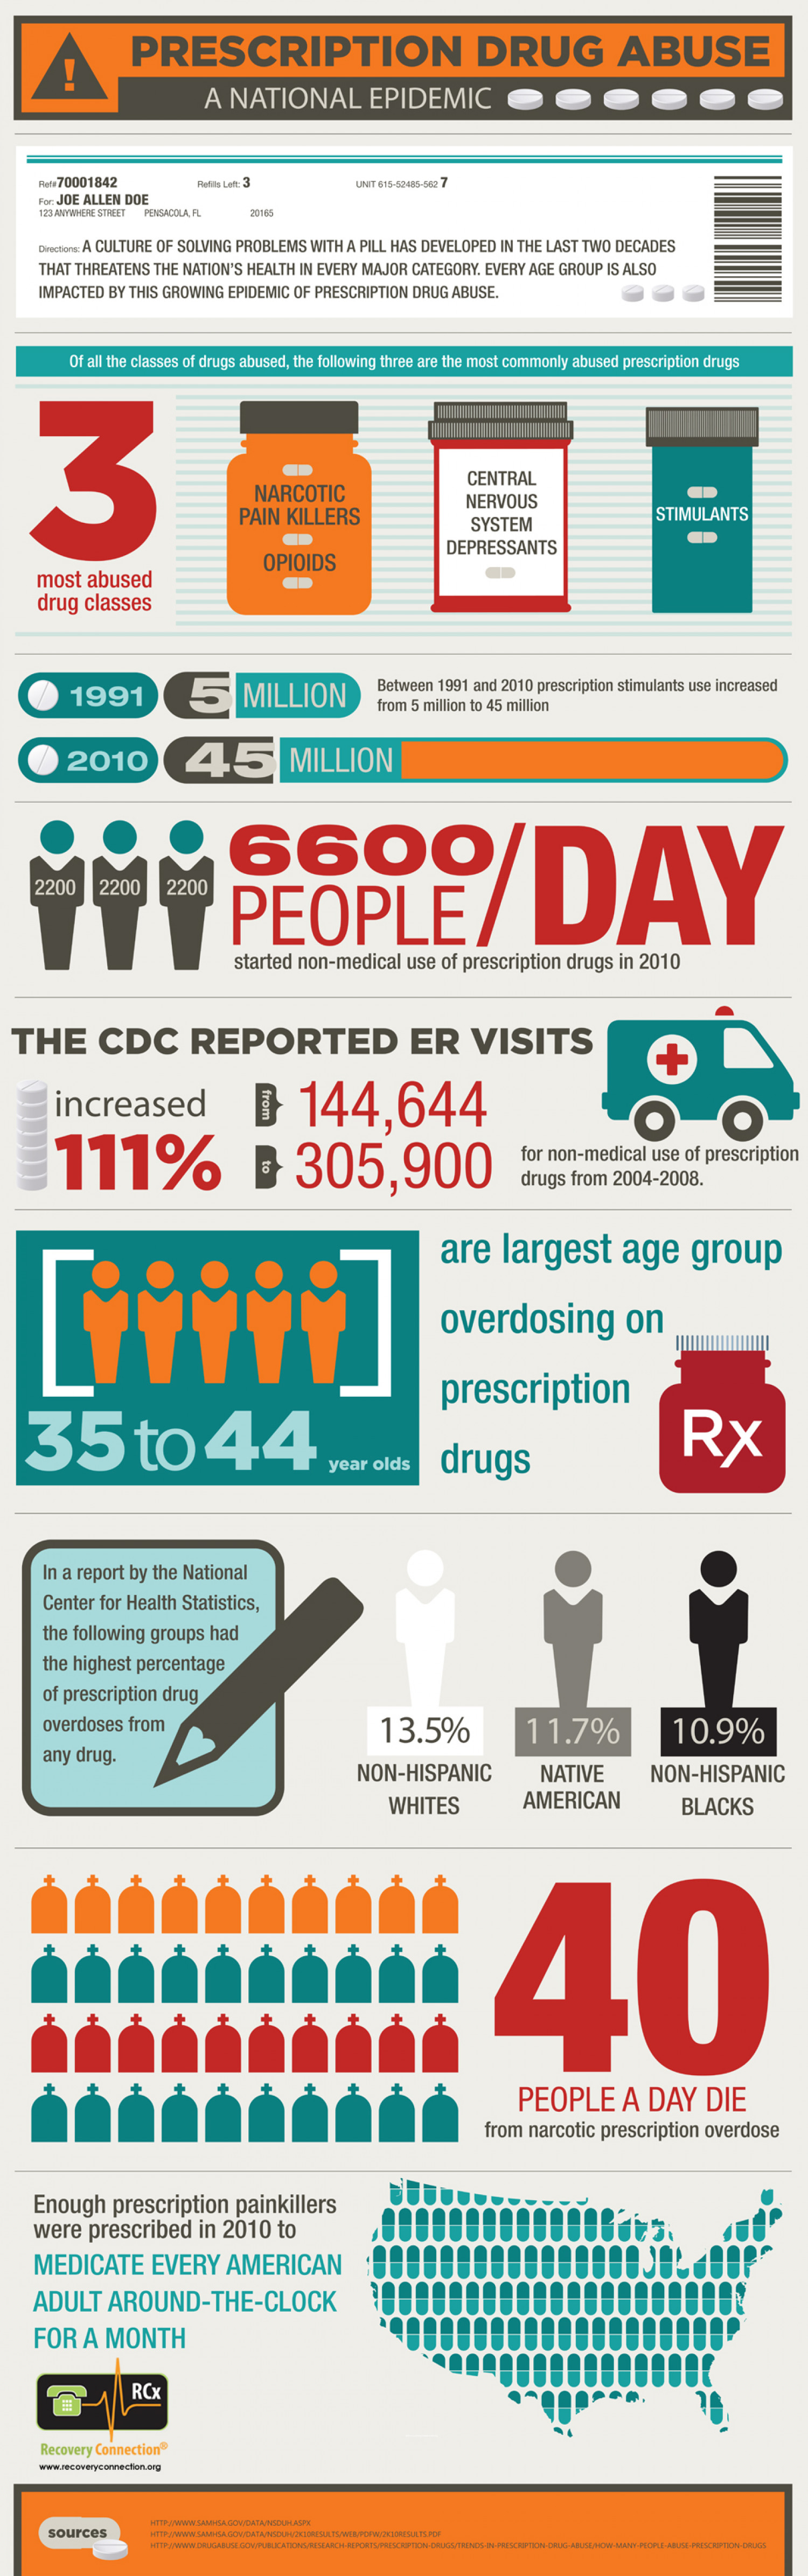 Prescription Drug Abuse: A National Epidemic Infographic